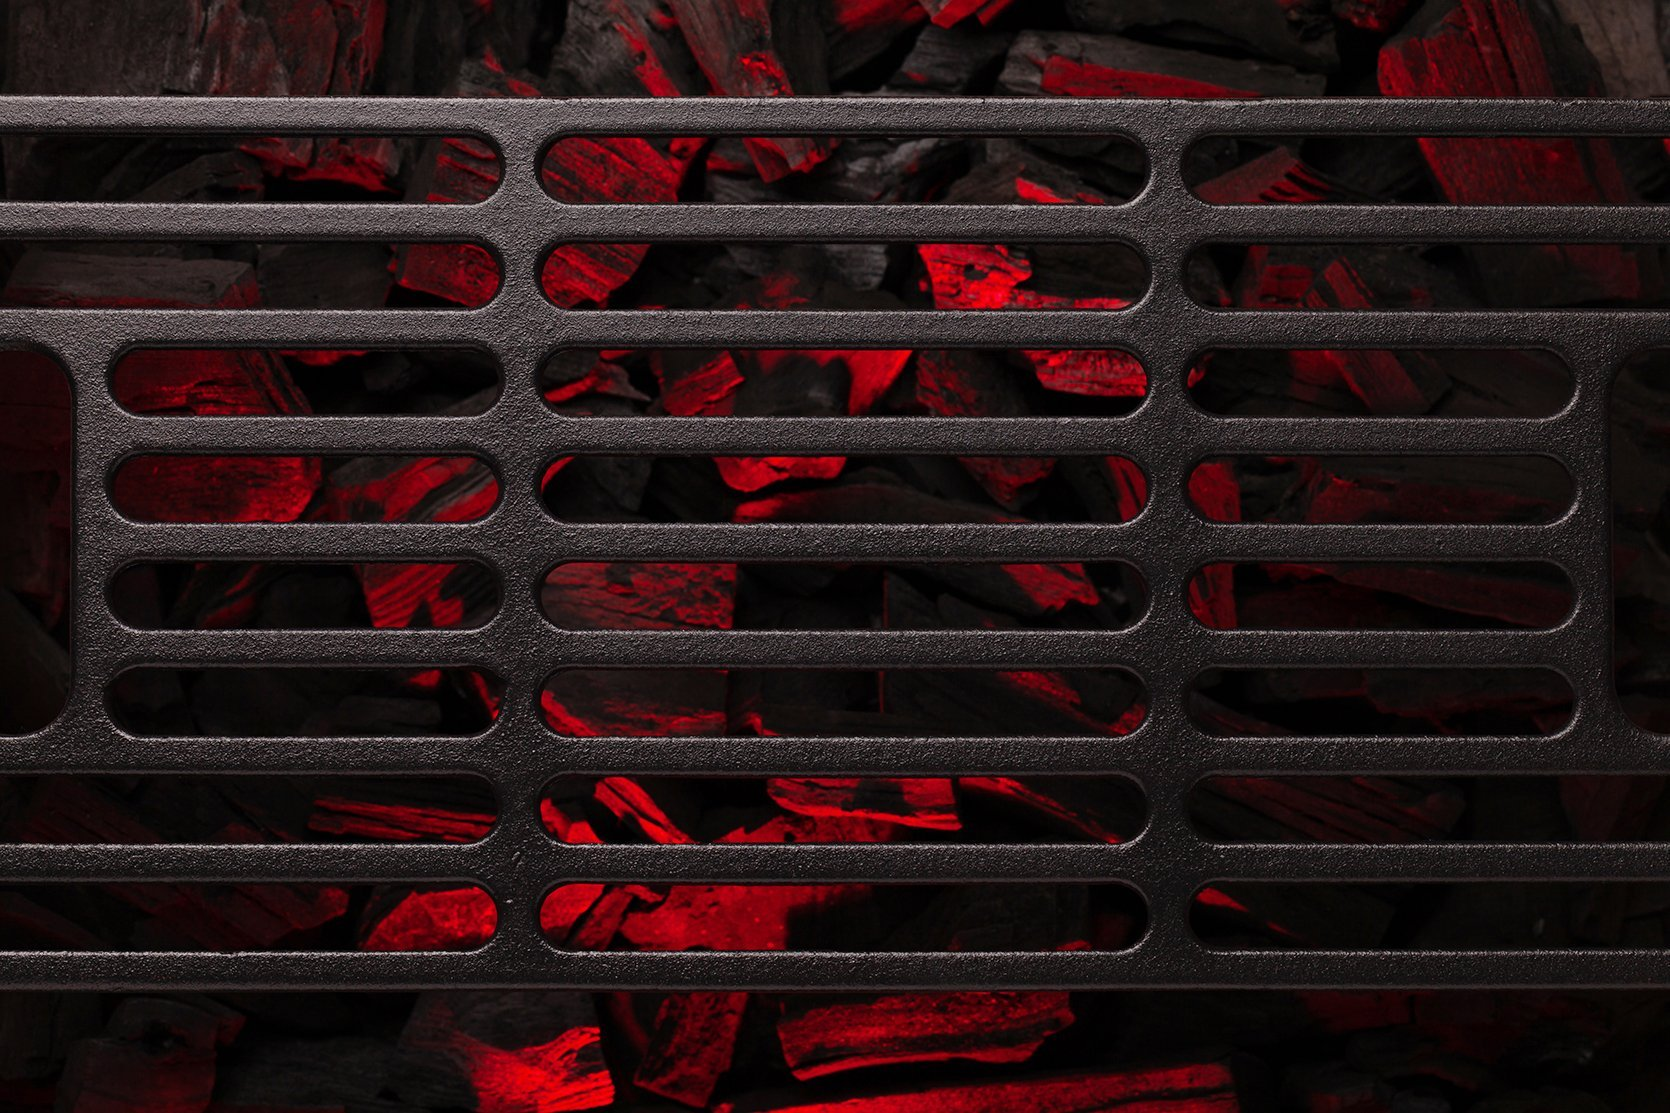 Grill Grate Buying Guide. How Choose The Best Grate for a Grill